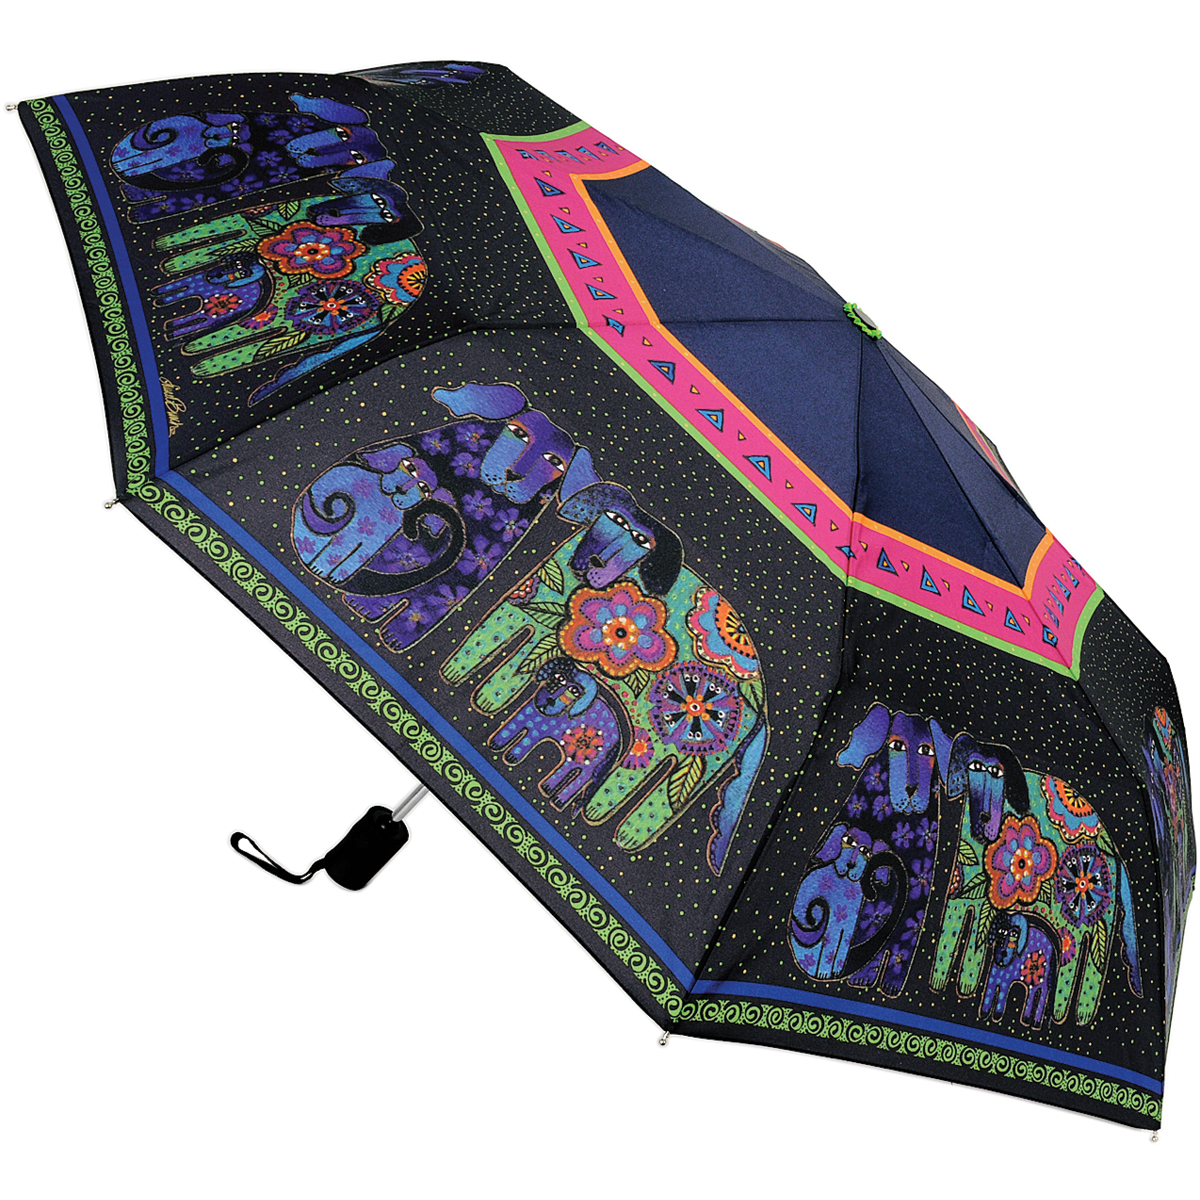 Laurel Burch Compact Umbrella 42 Inch Canopy Auto Open/Close-Dog &